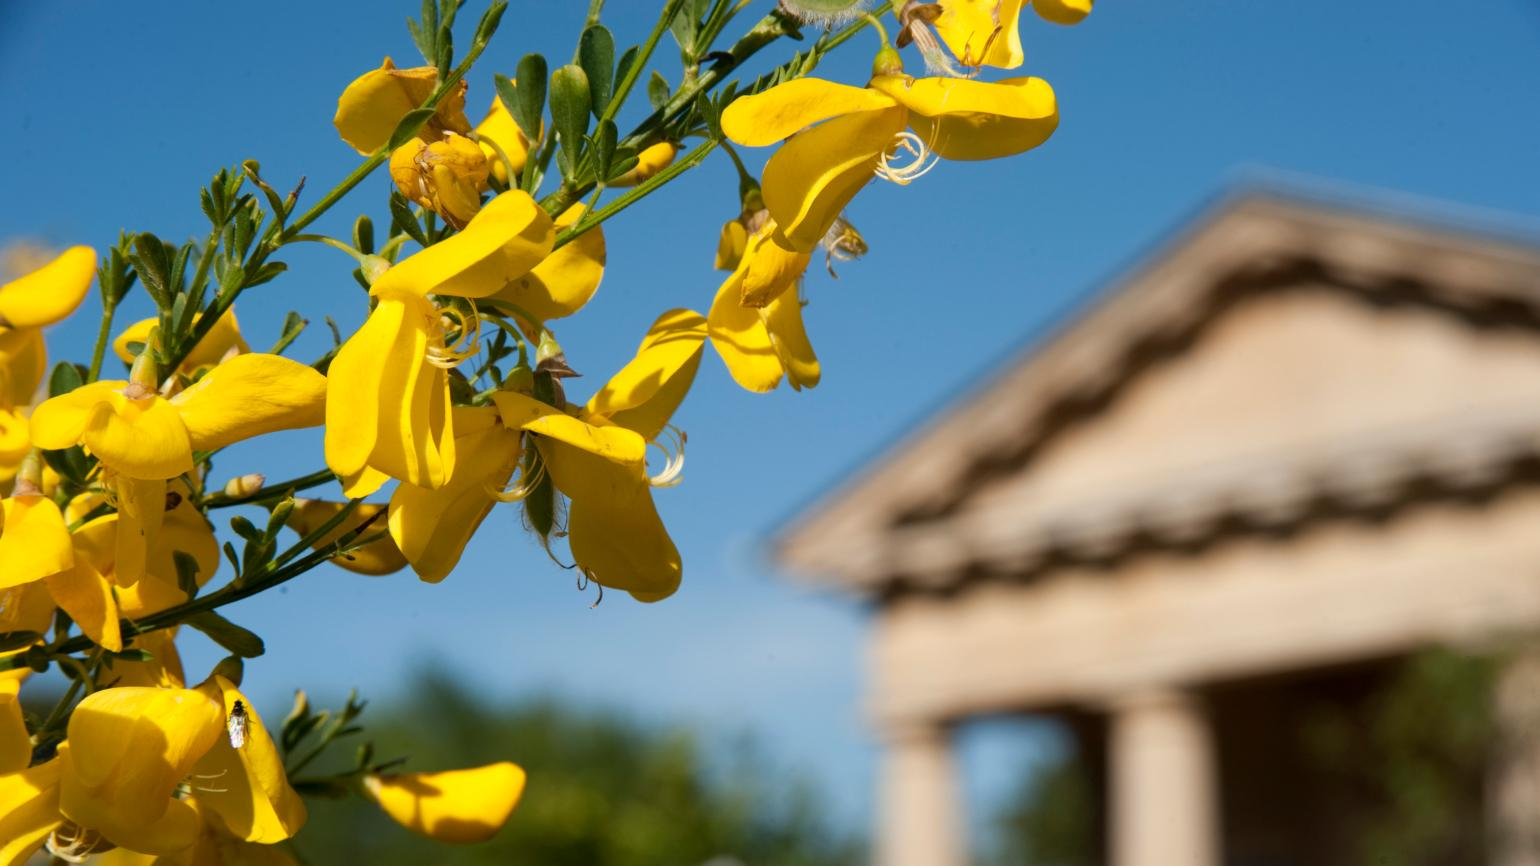 Yellow flowers against a blue sky in the Mediterranean Garden